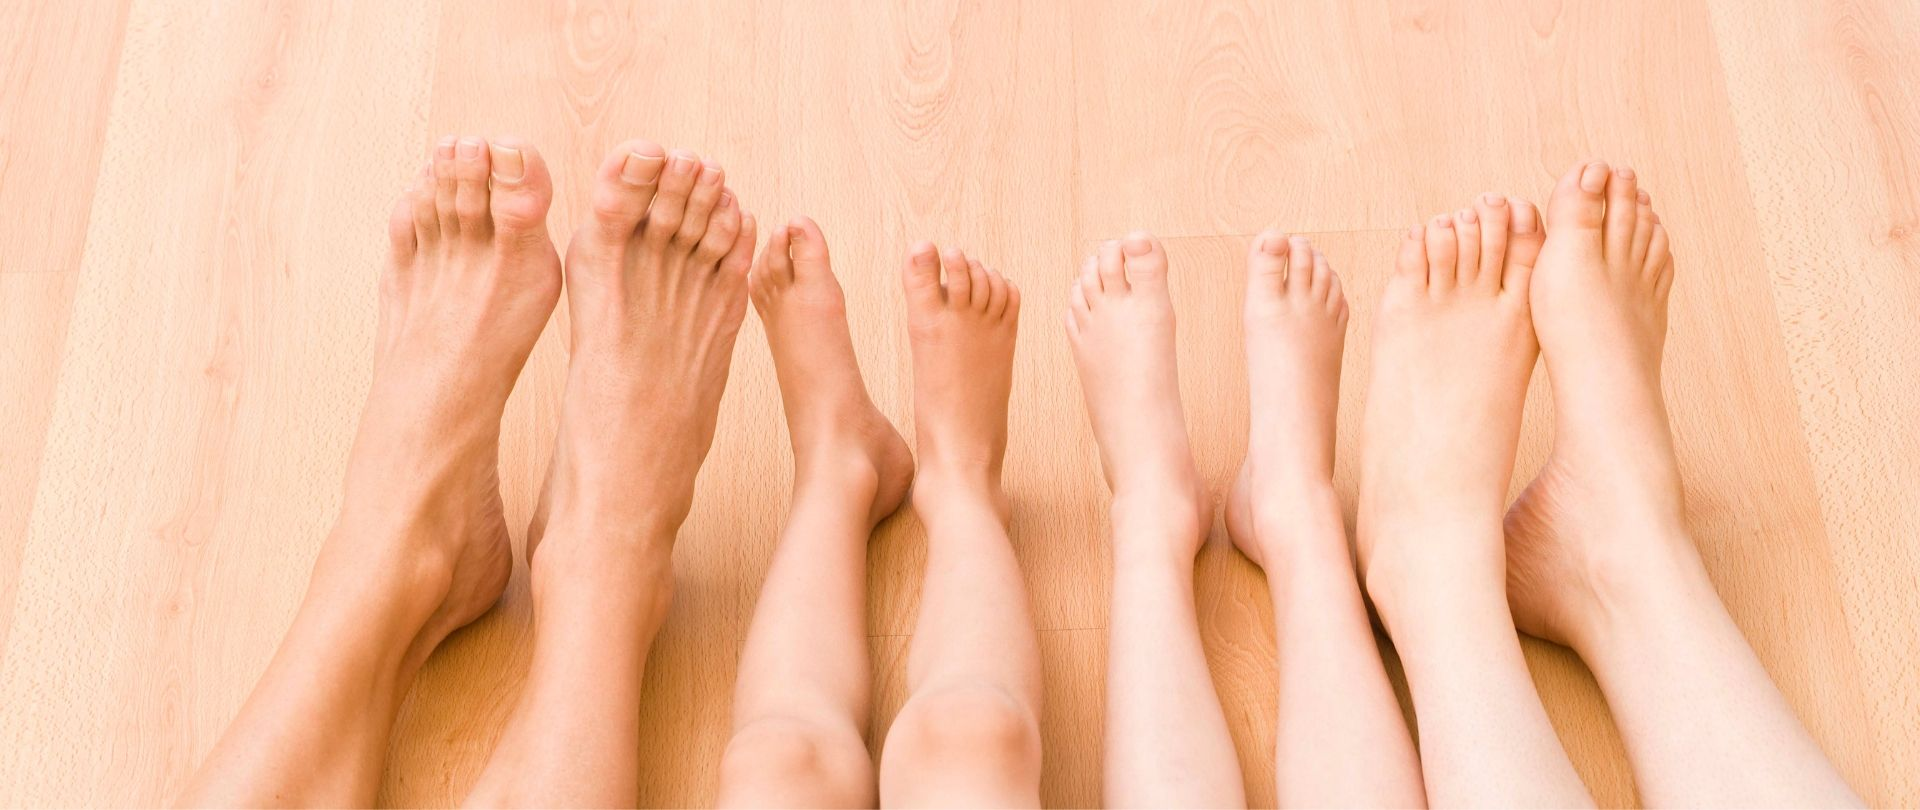 Family of Feet